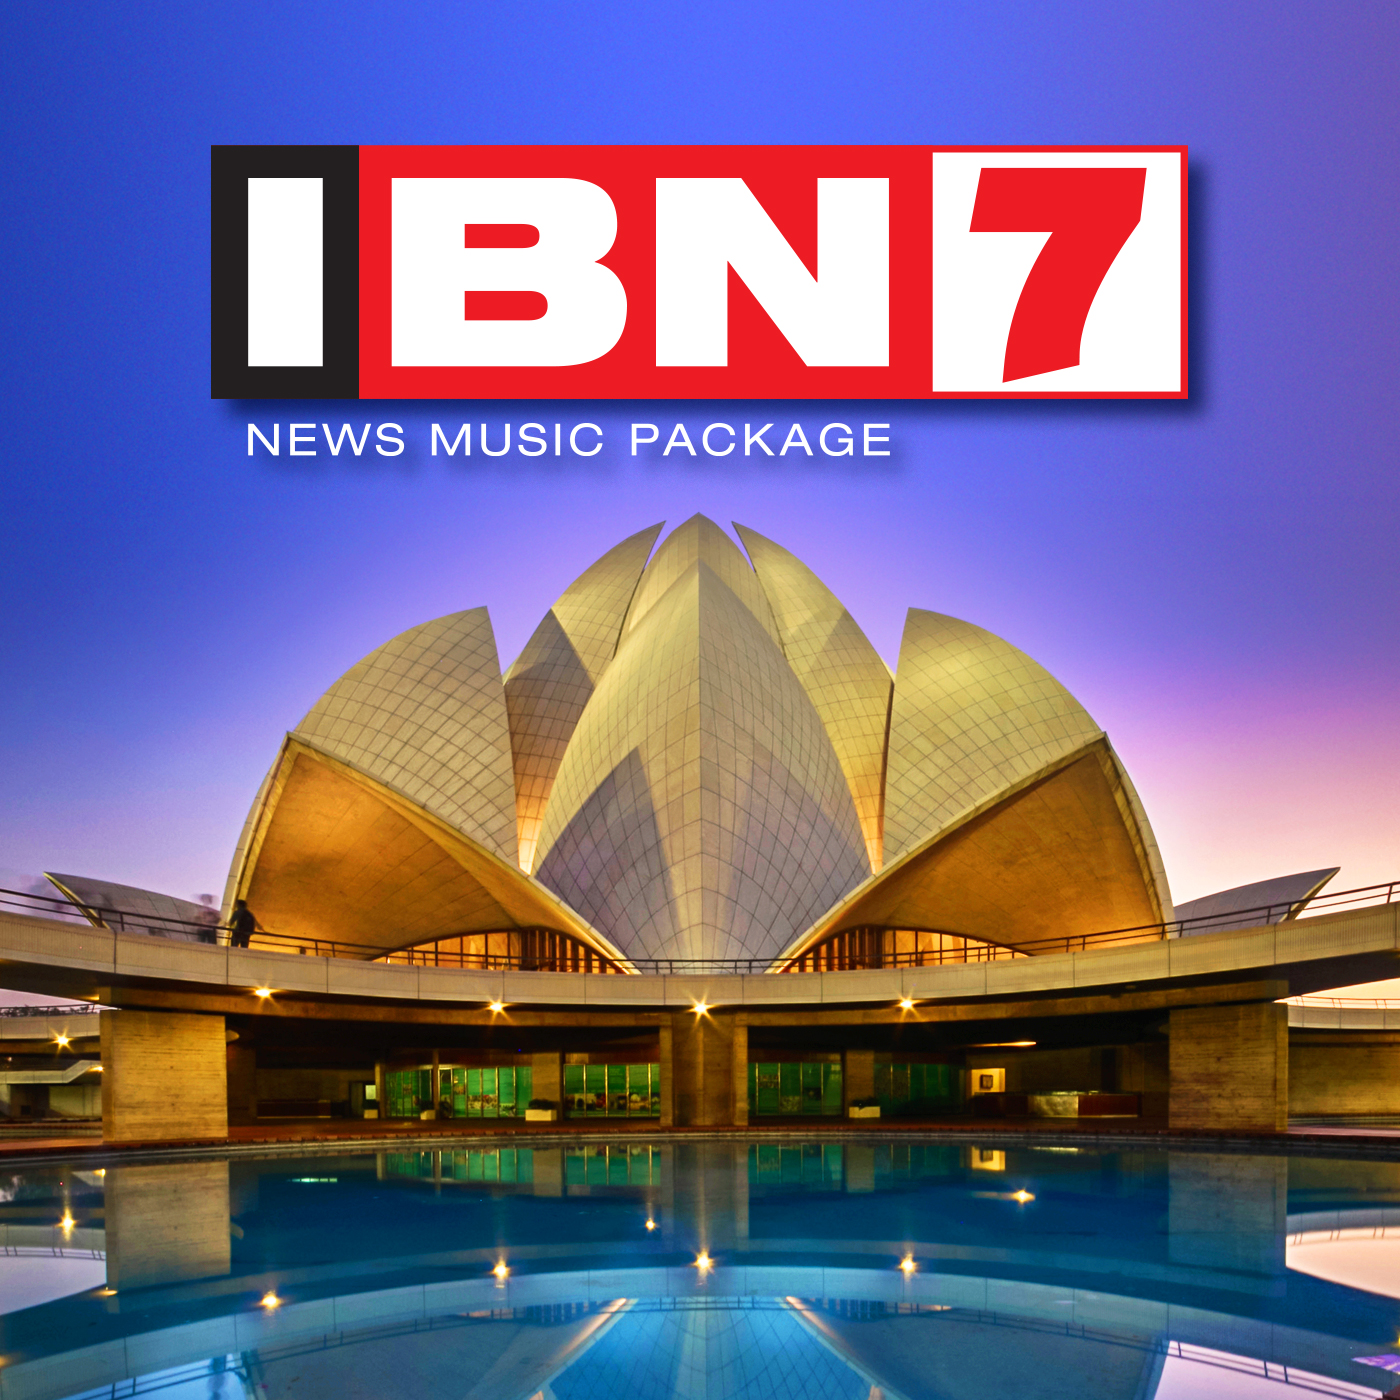 IBN7 Station News Music Package